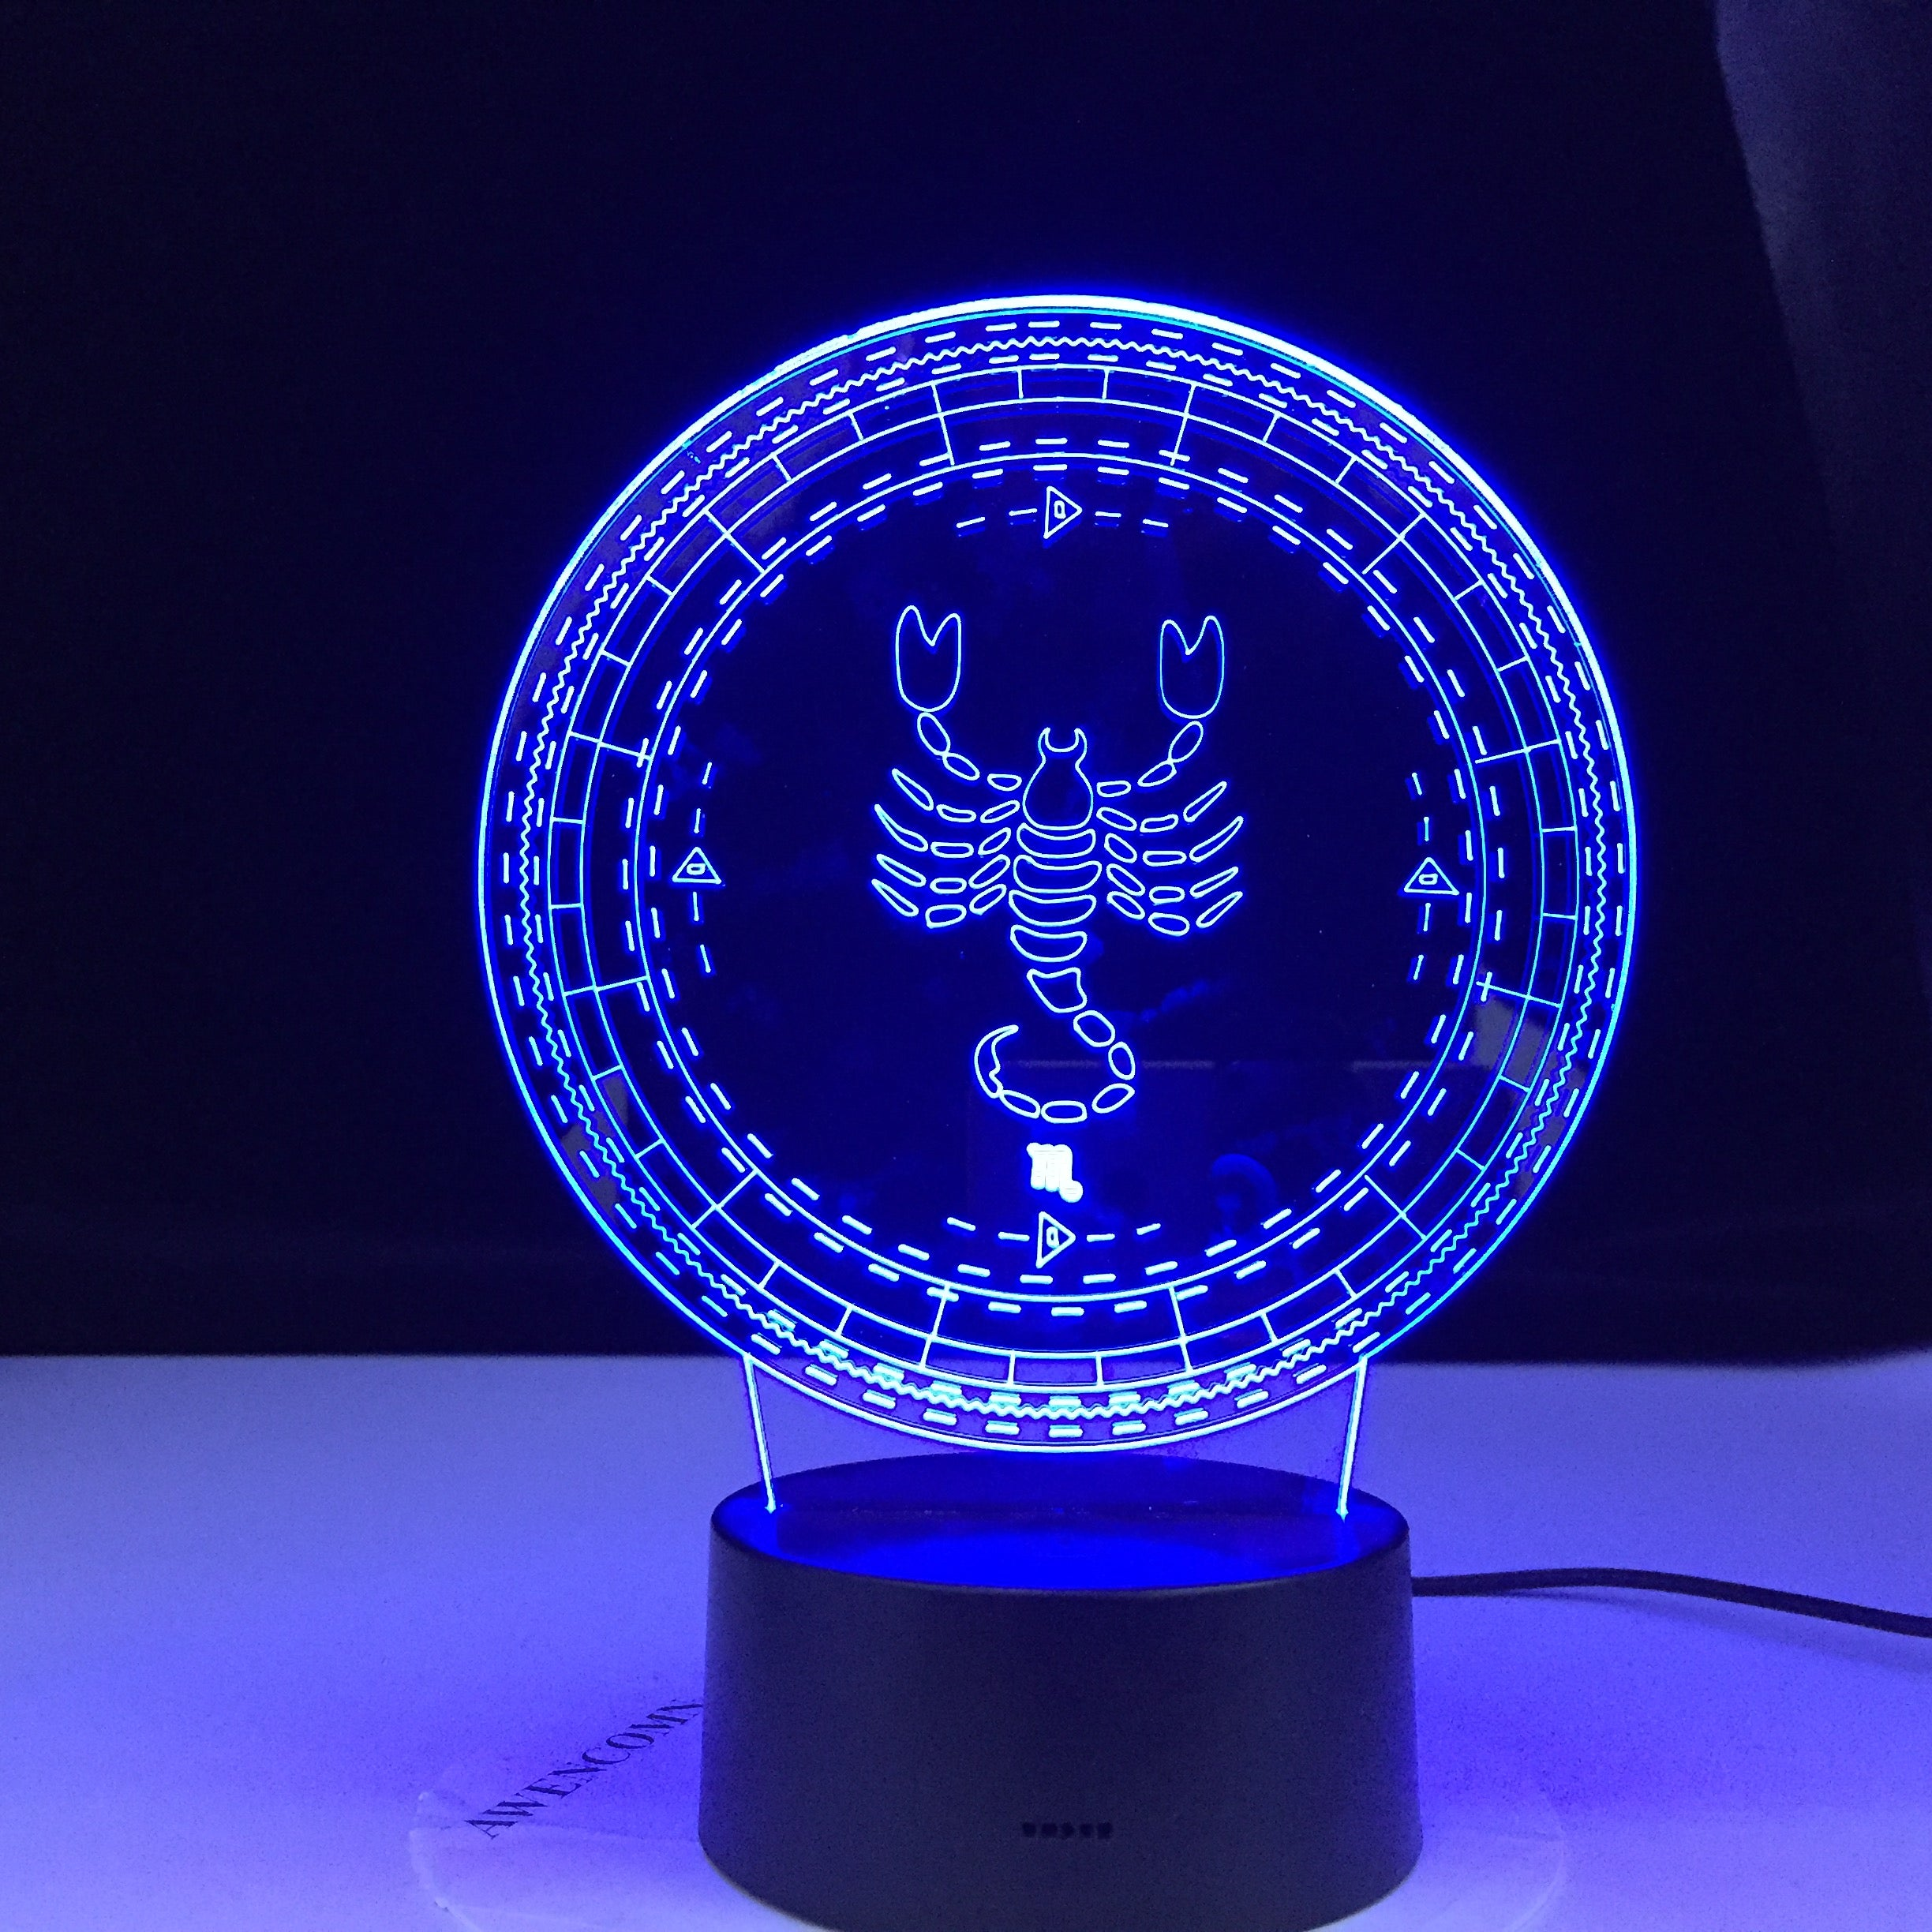 Scorpio Twelve Constellation Lamp Kids Night Light Led Colorful Touch Sensor Nightlight for Home Decoration Light Birthday Gift